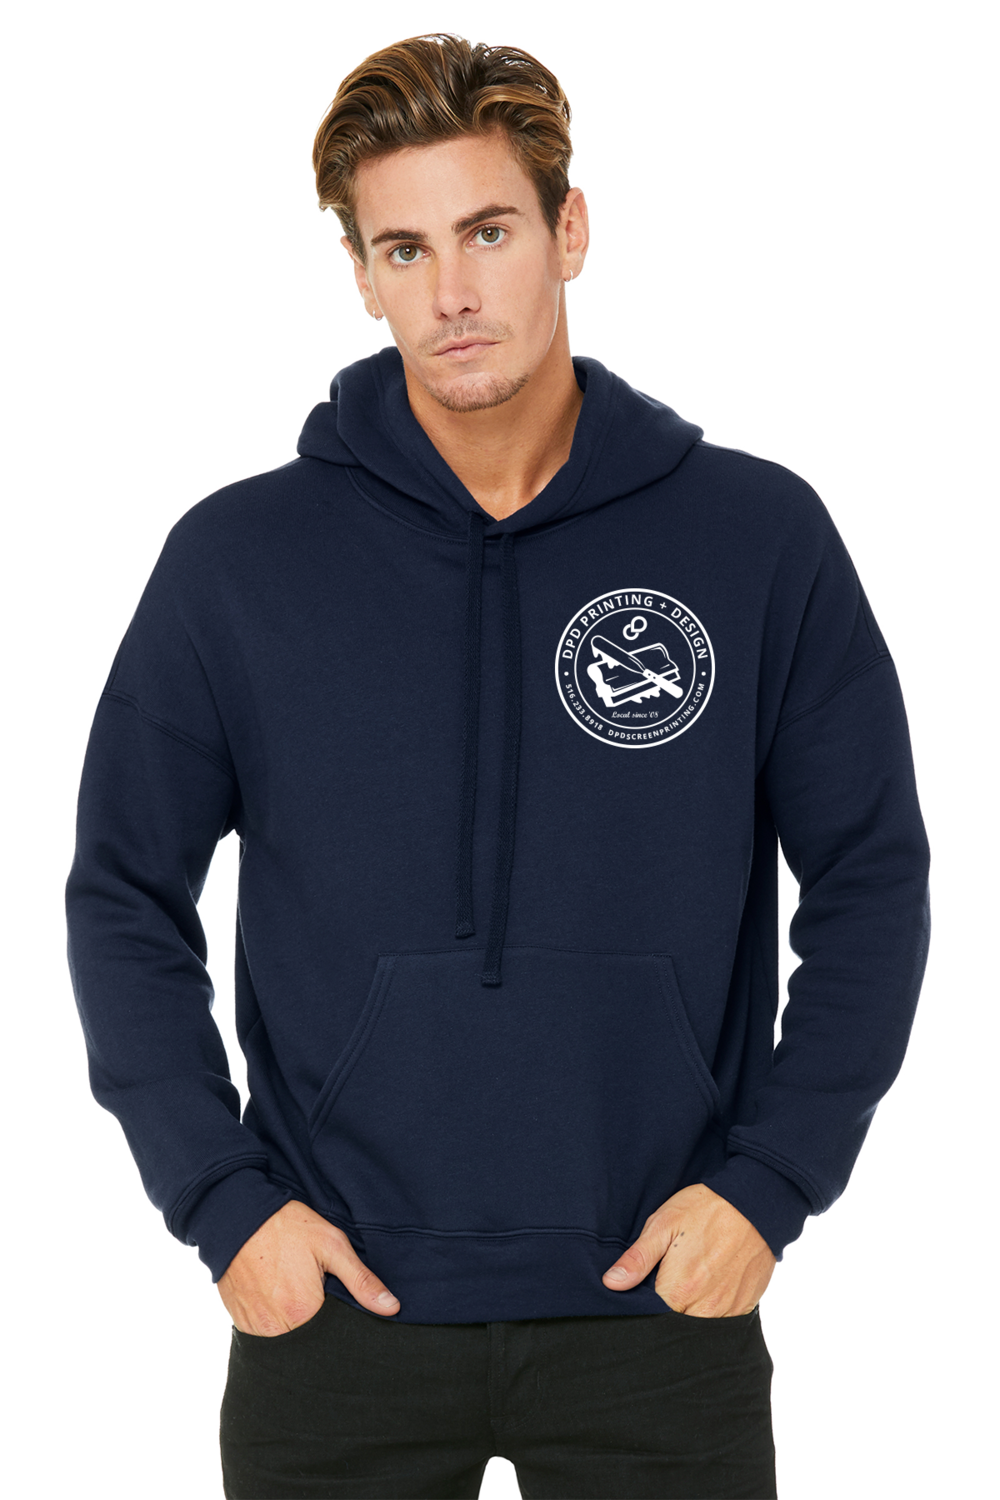 Hoodies - Pullovers, Zip-ups, Crew Necks